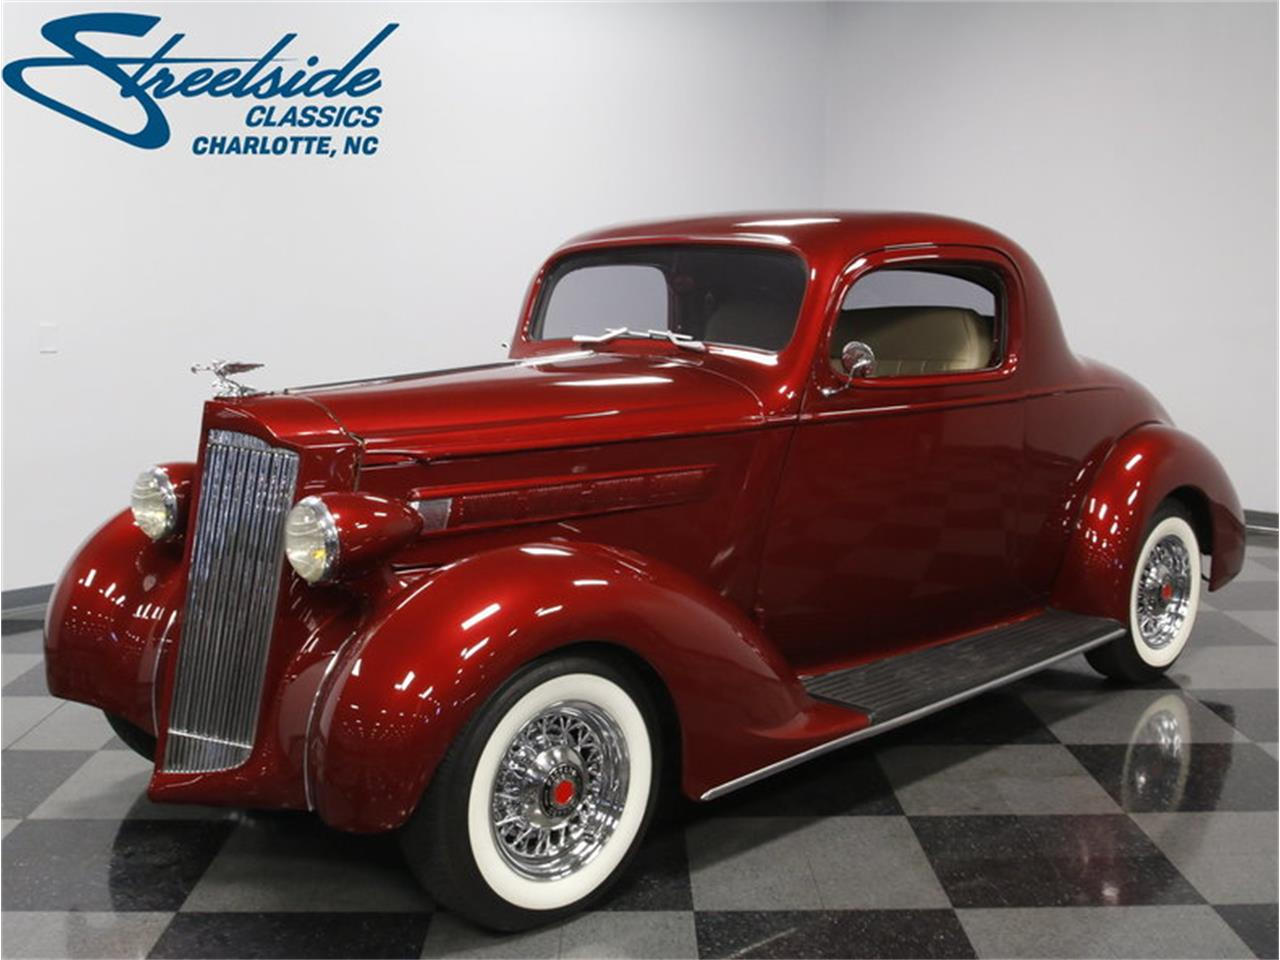 1937 Packard 115 Business Coupe Restomod in Concord, North Carolina